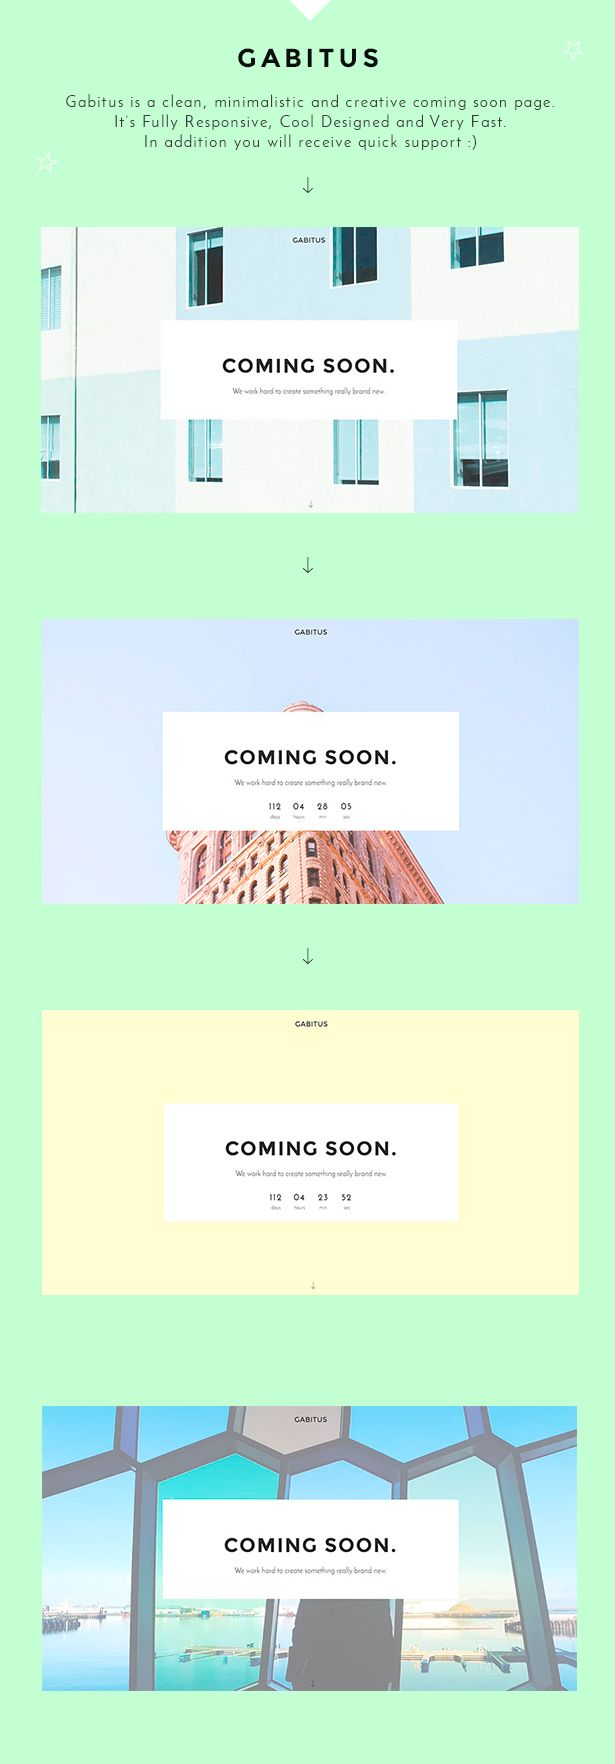 gabitus, coming soon template